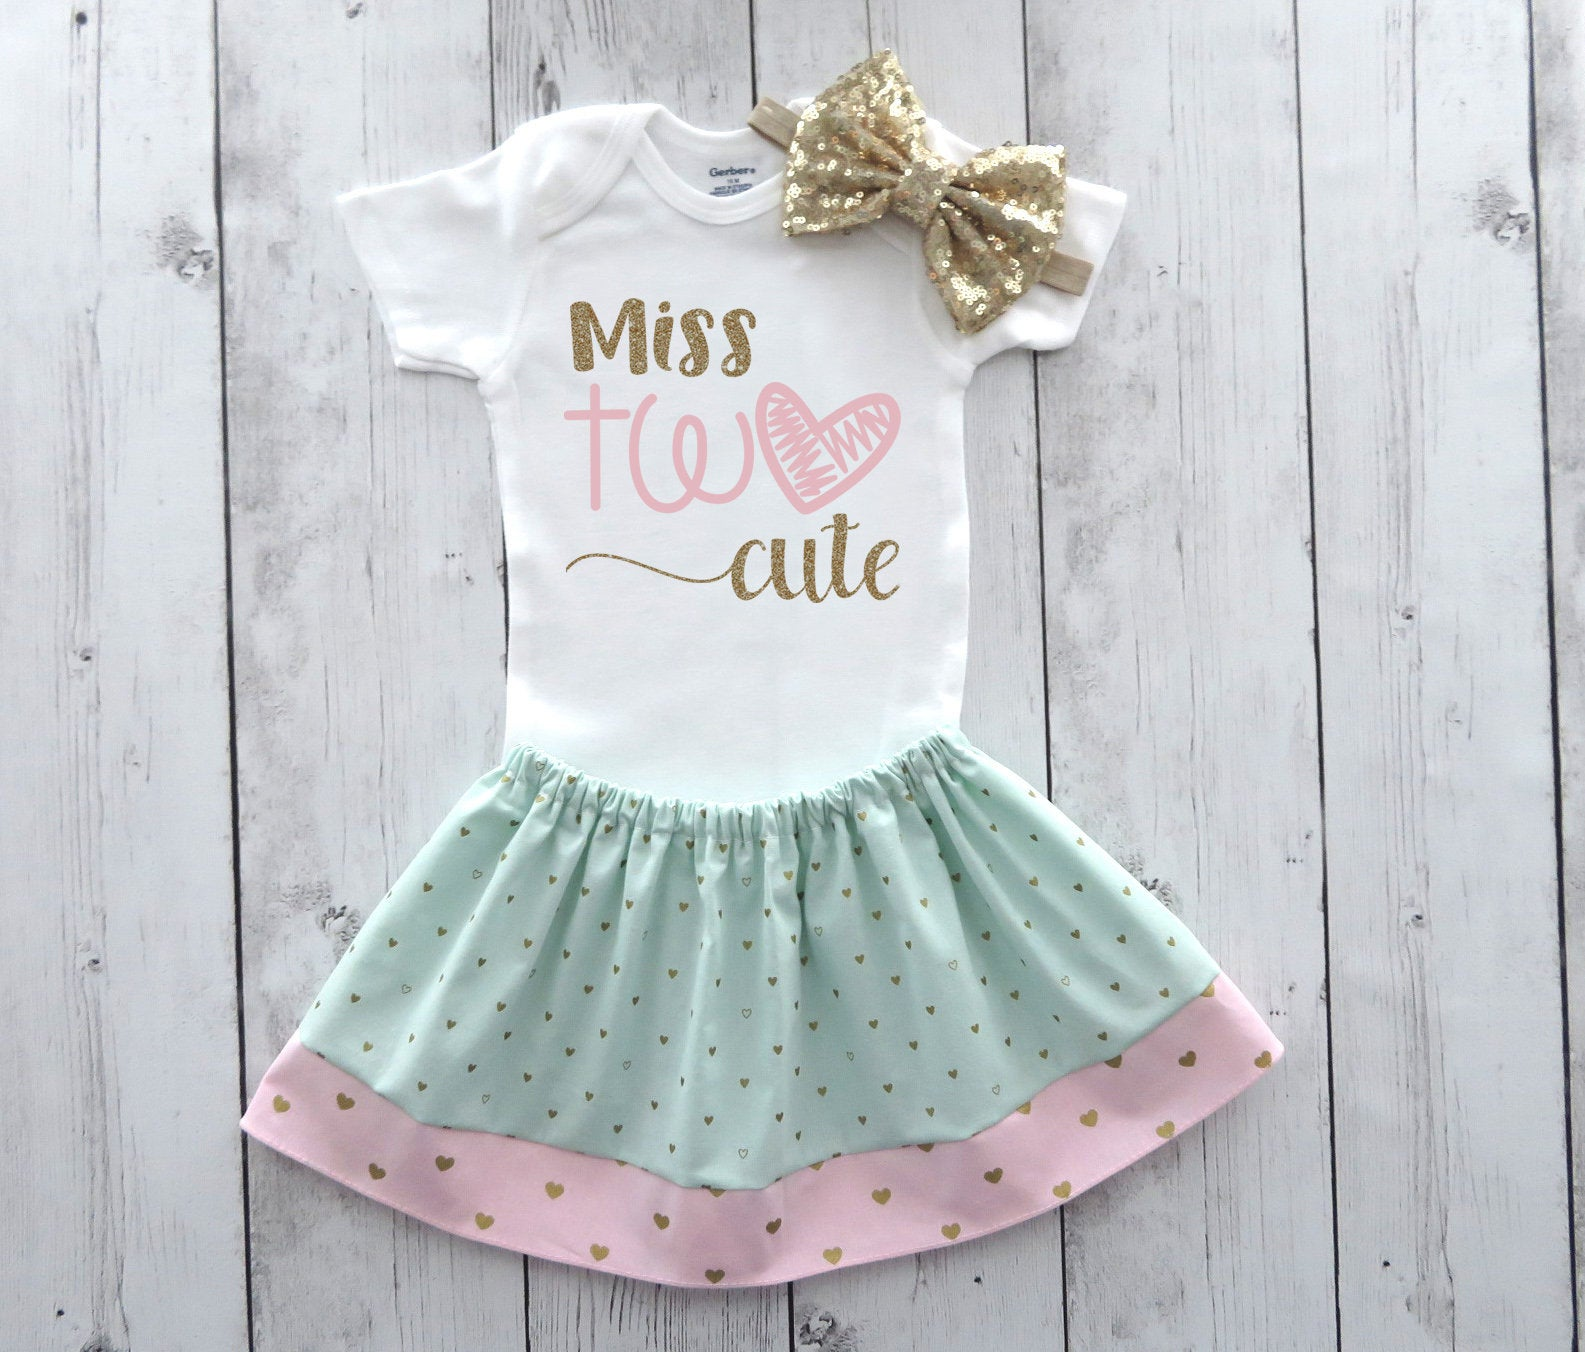 Second Birthday Outfit for Baby Girl in mint, pink and gold - Miss Two Cute birthday outfit, heart birthday girl, two cute birthday party